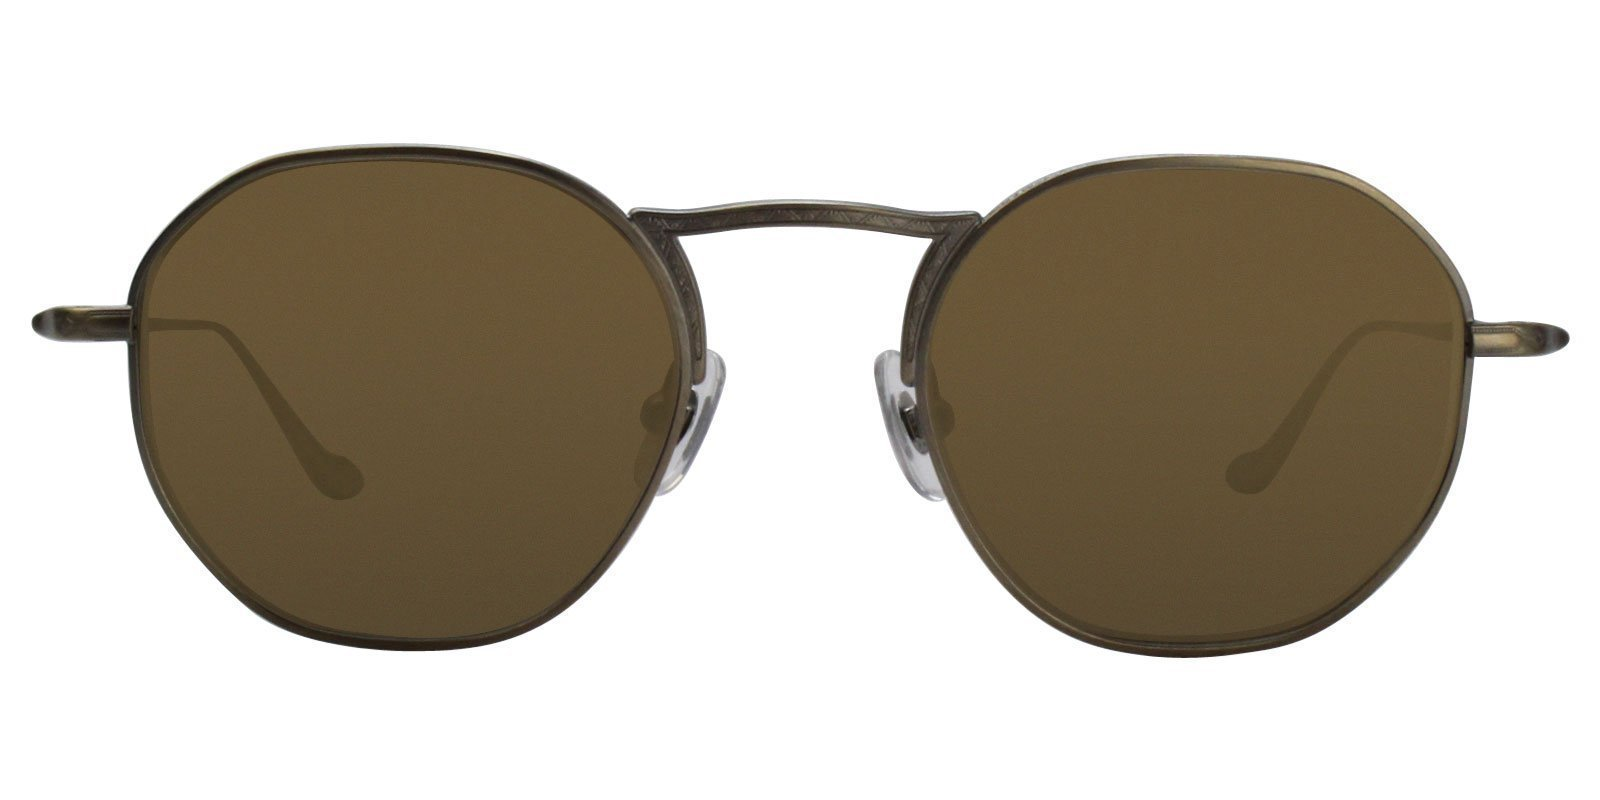 Matsuda - M3057 Gold/Gold Mirror Oval Unisex Sunglasses - 49mm-Sunglasses-Designer Eyes